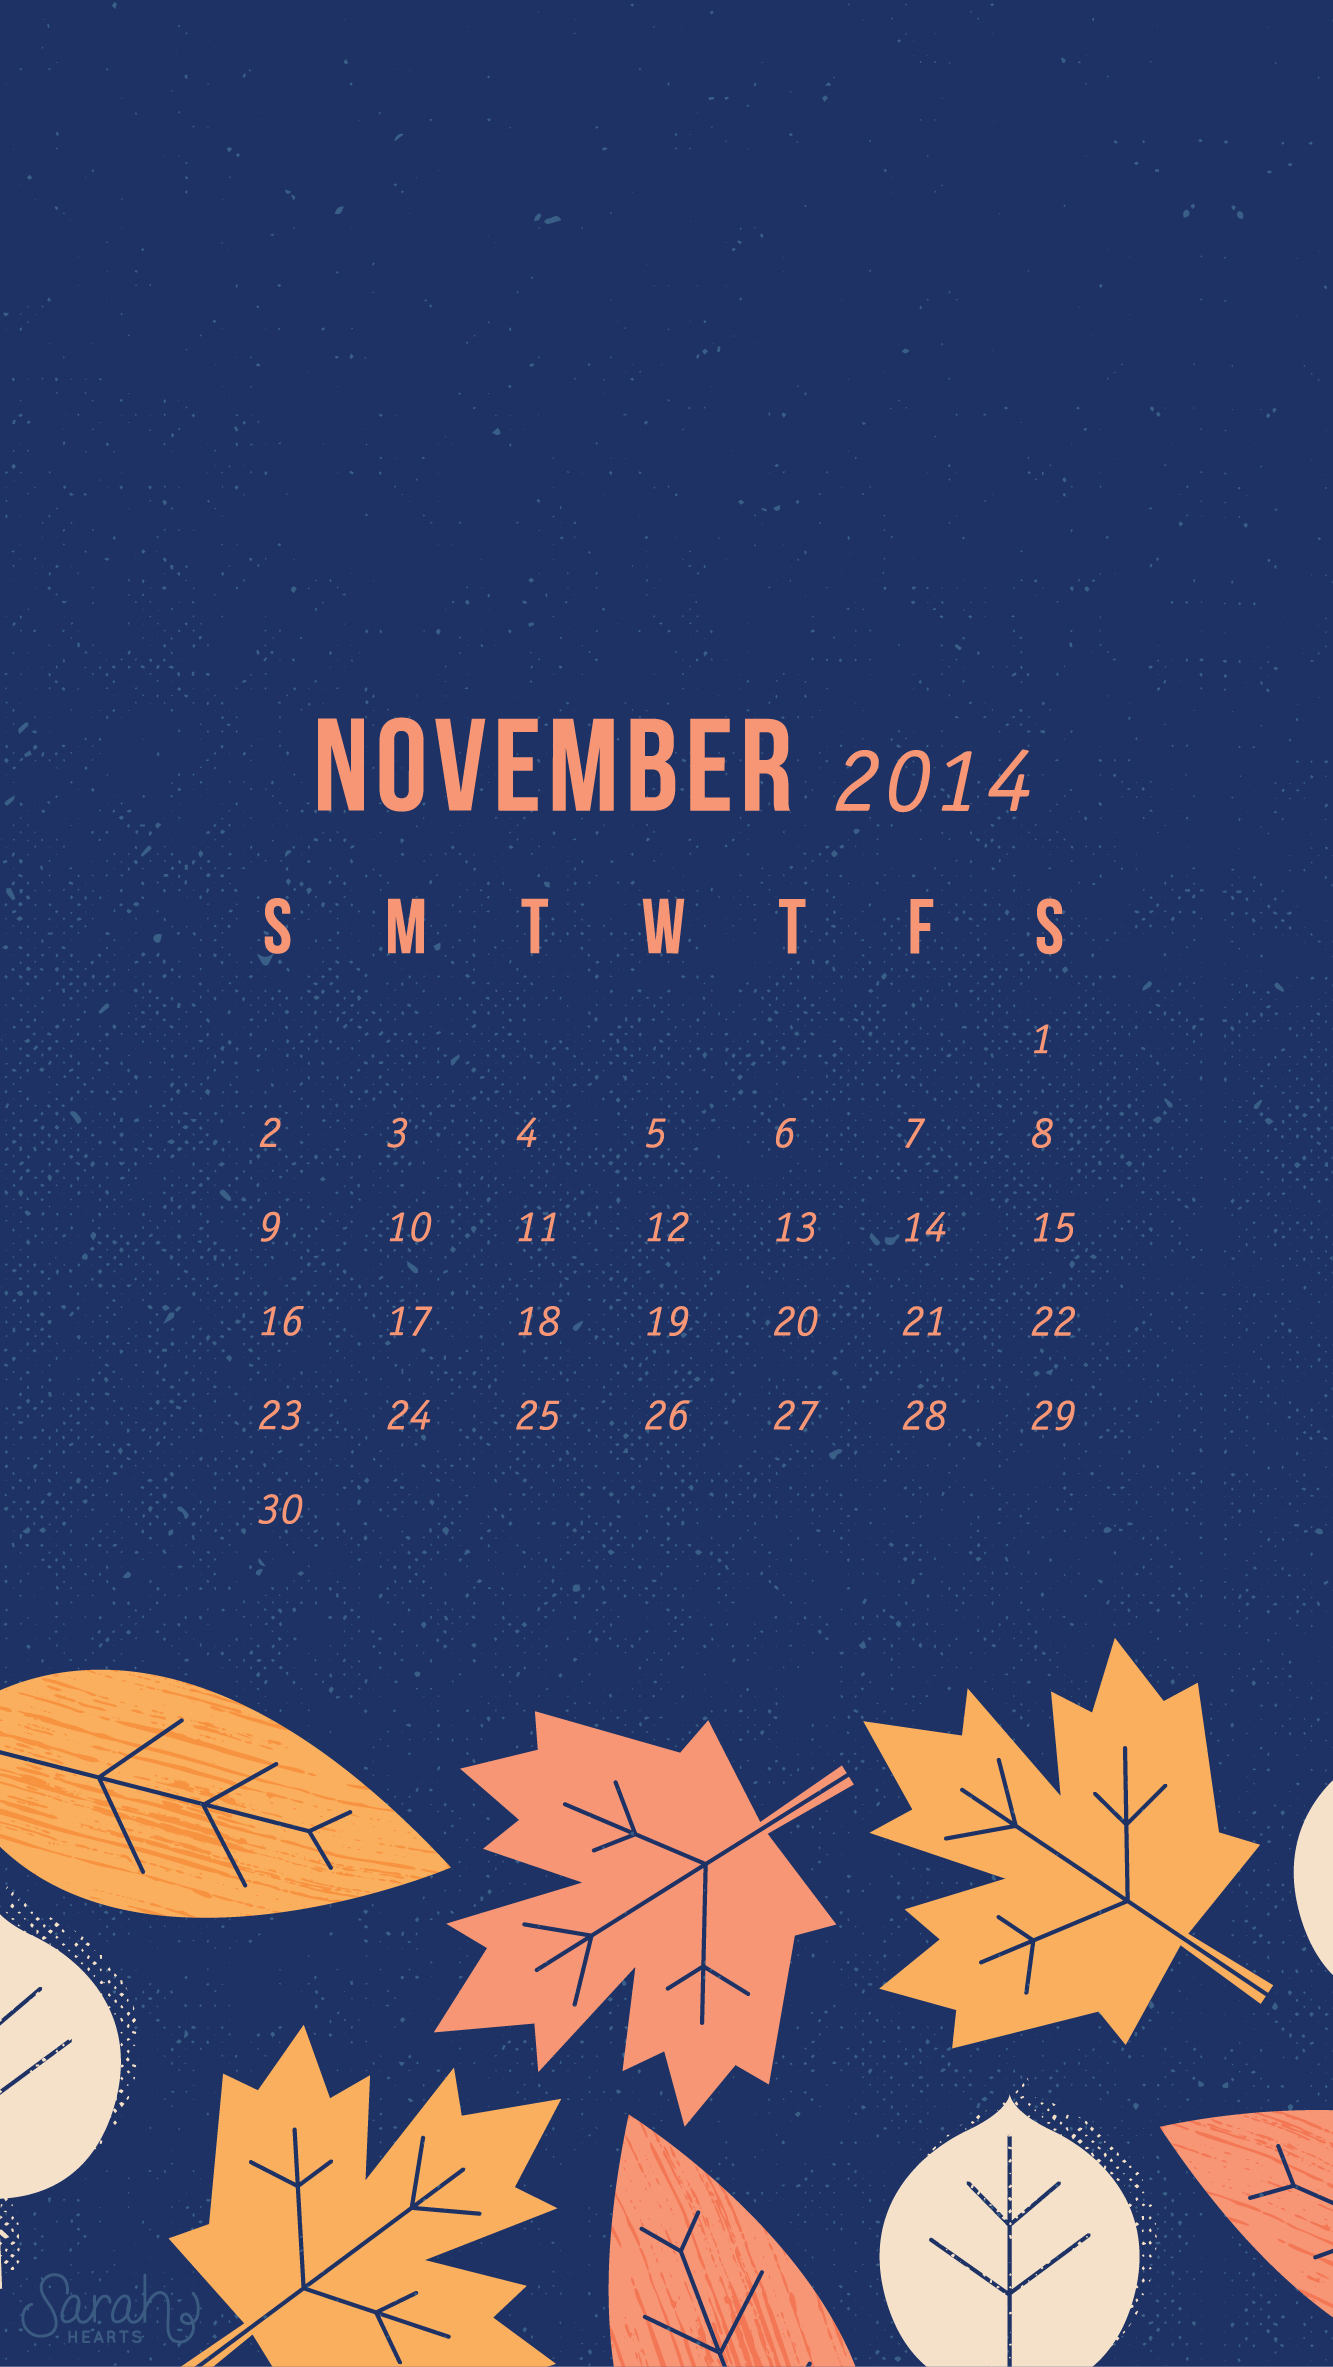 Free Computer Wallpaper Fall Leaves November 2014 Calendar Wallpapers Sarah Hearts